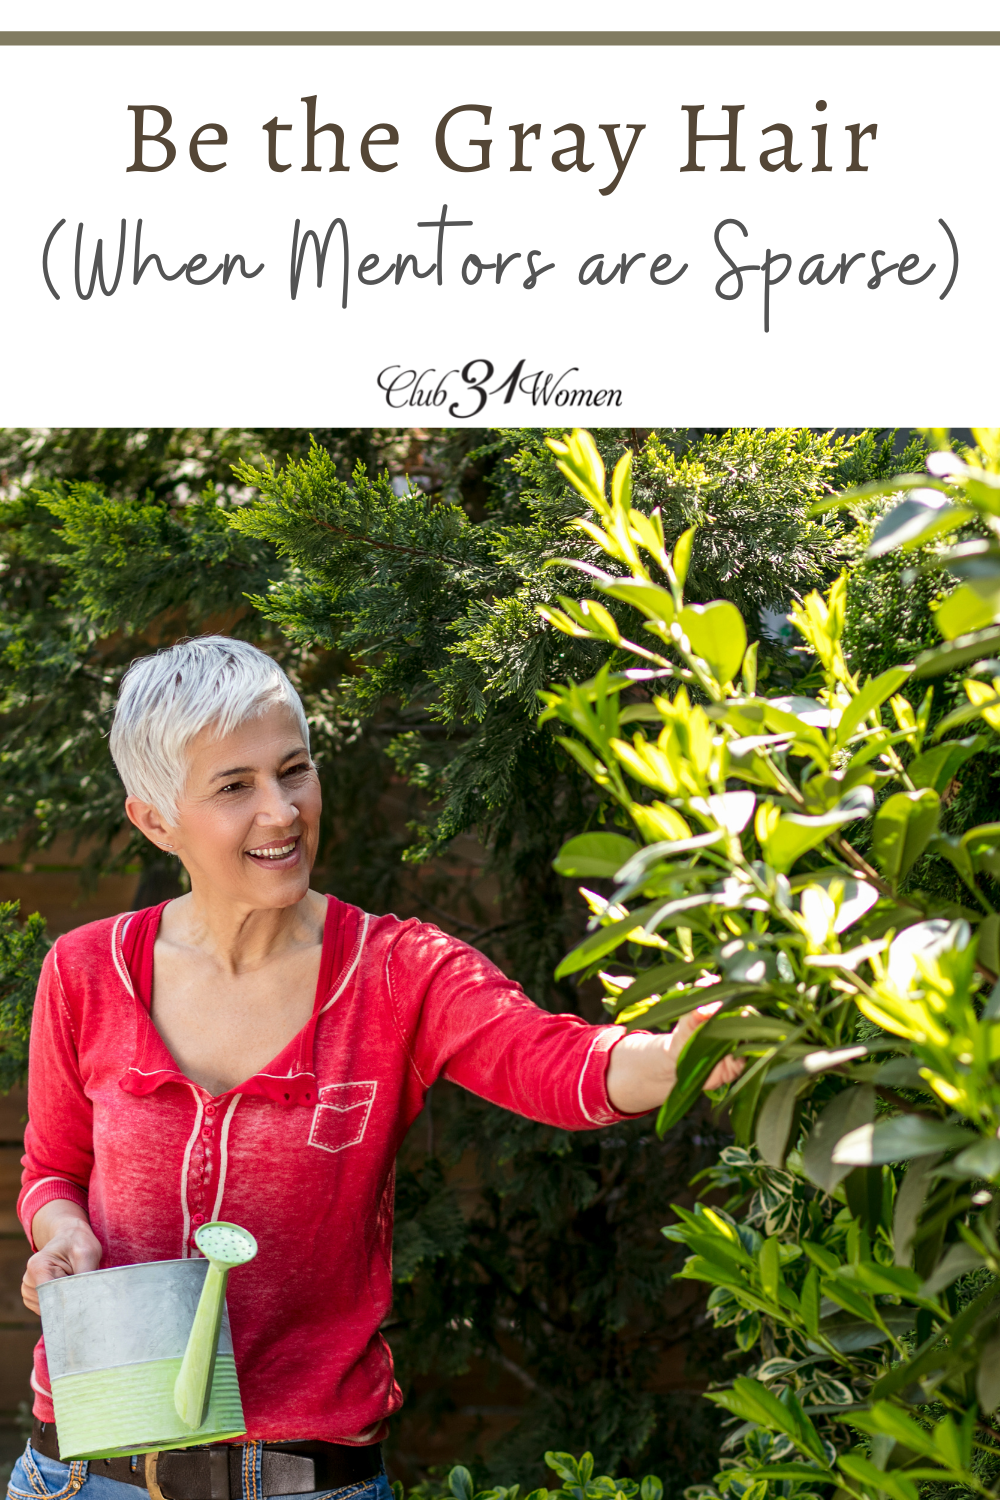 Do you know how hard it is to find mentors today? Maybe you can be the one who links arms with a younger woman for a season? via @Club31Women